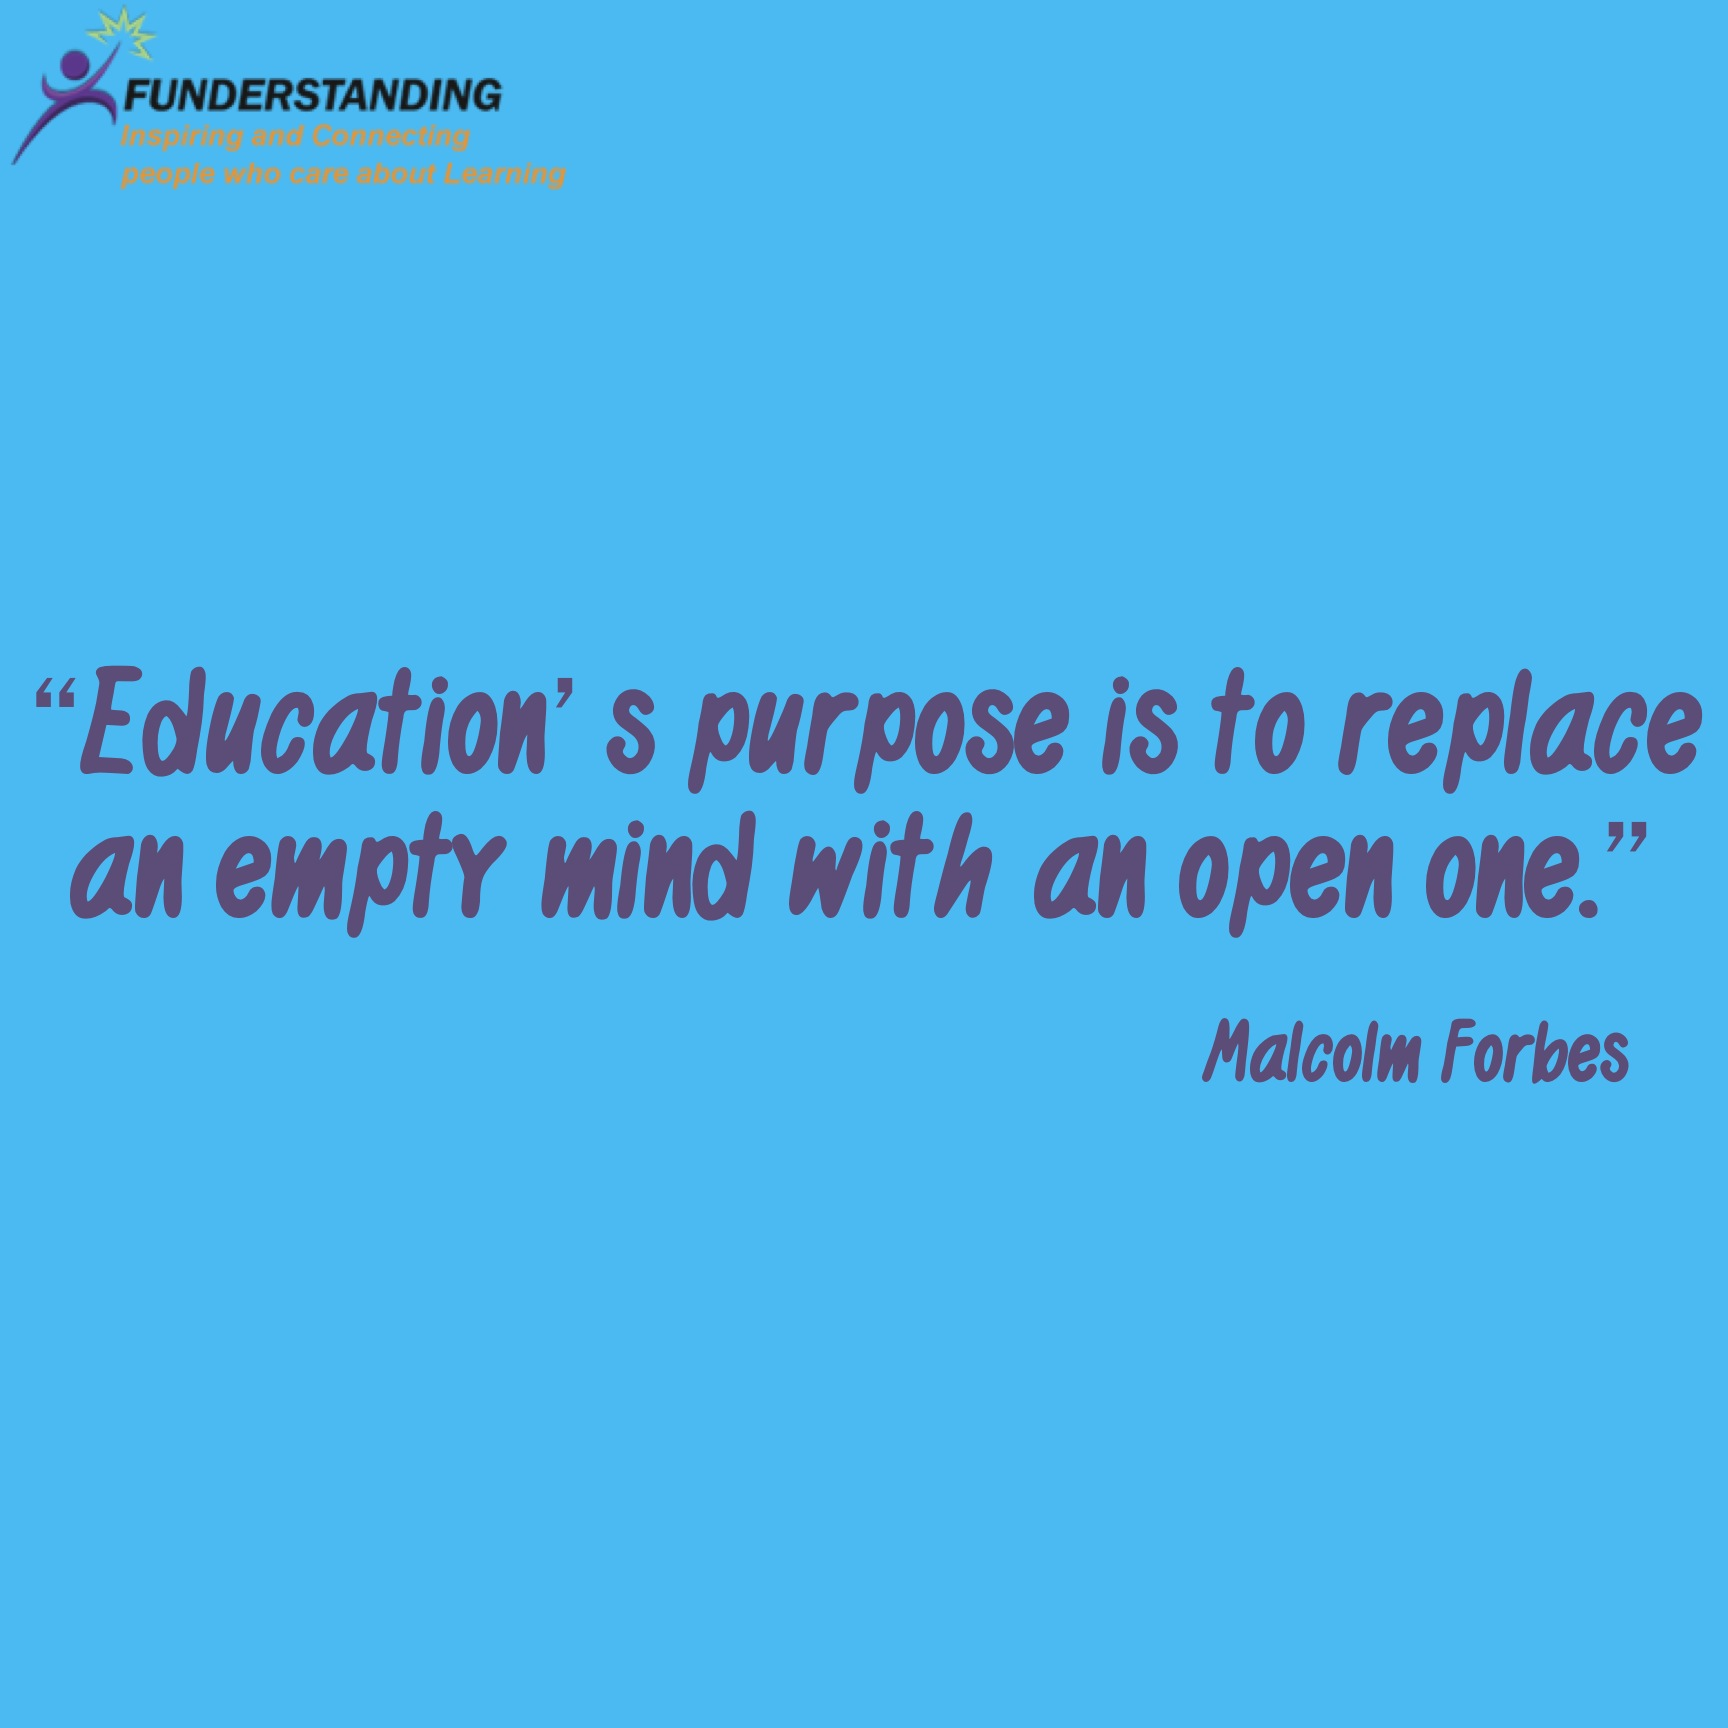 Horace Mann Quotes: Character Education Horace Mann Quotes. QuotesGram